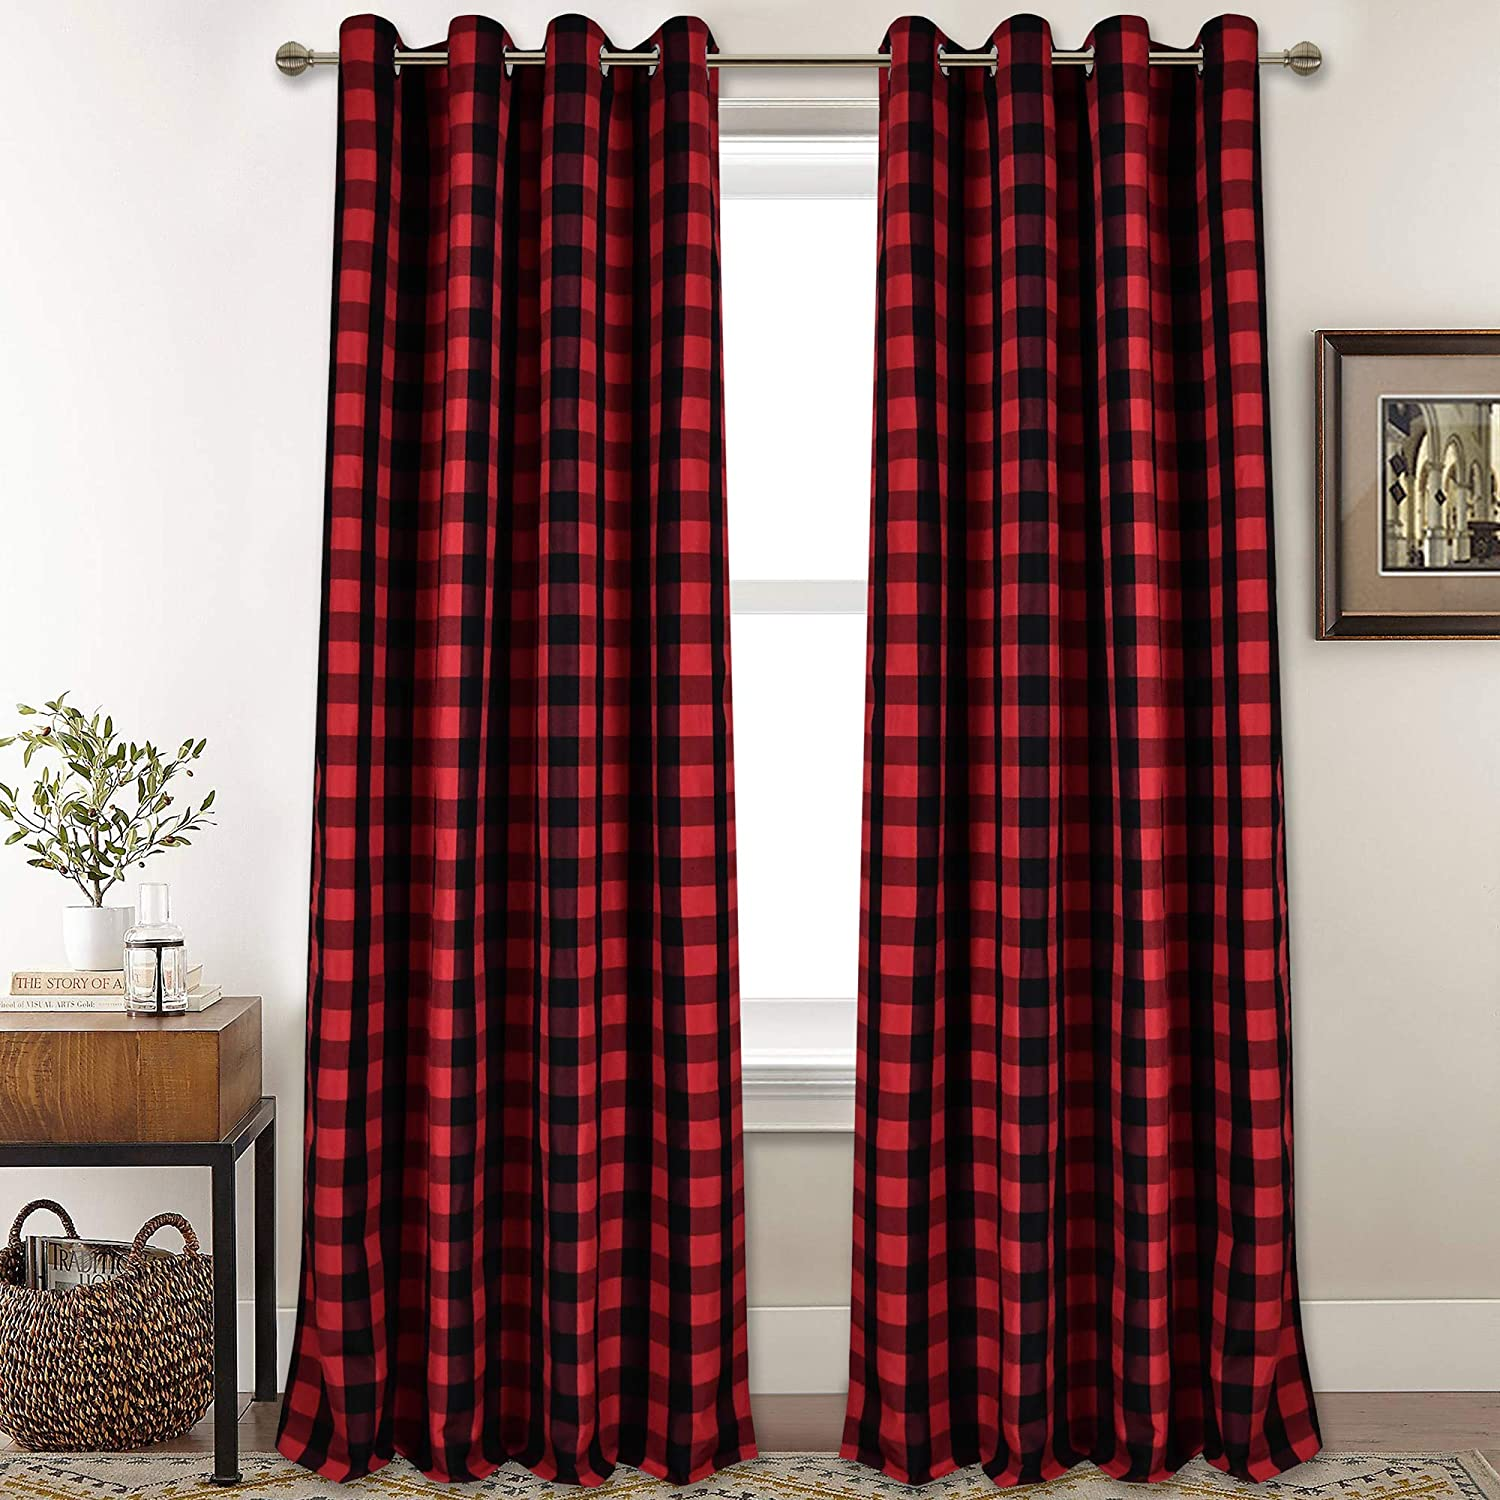 Watercolor Plaid Custom Curtain Panel by Spoonflower Gingham Curtain Panel Red Plaid In Watercolor by daria/_nokso